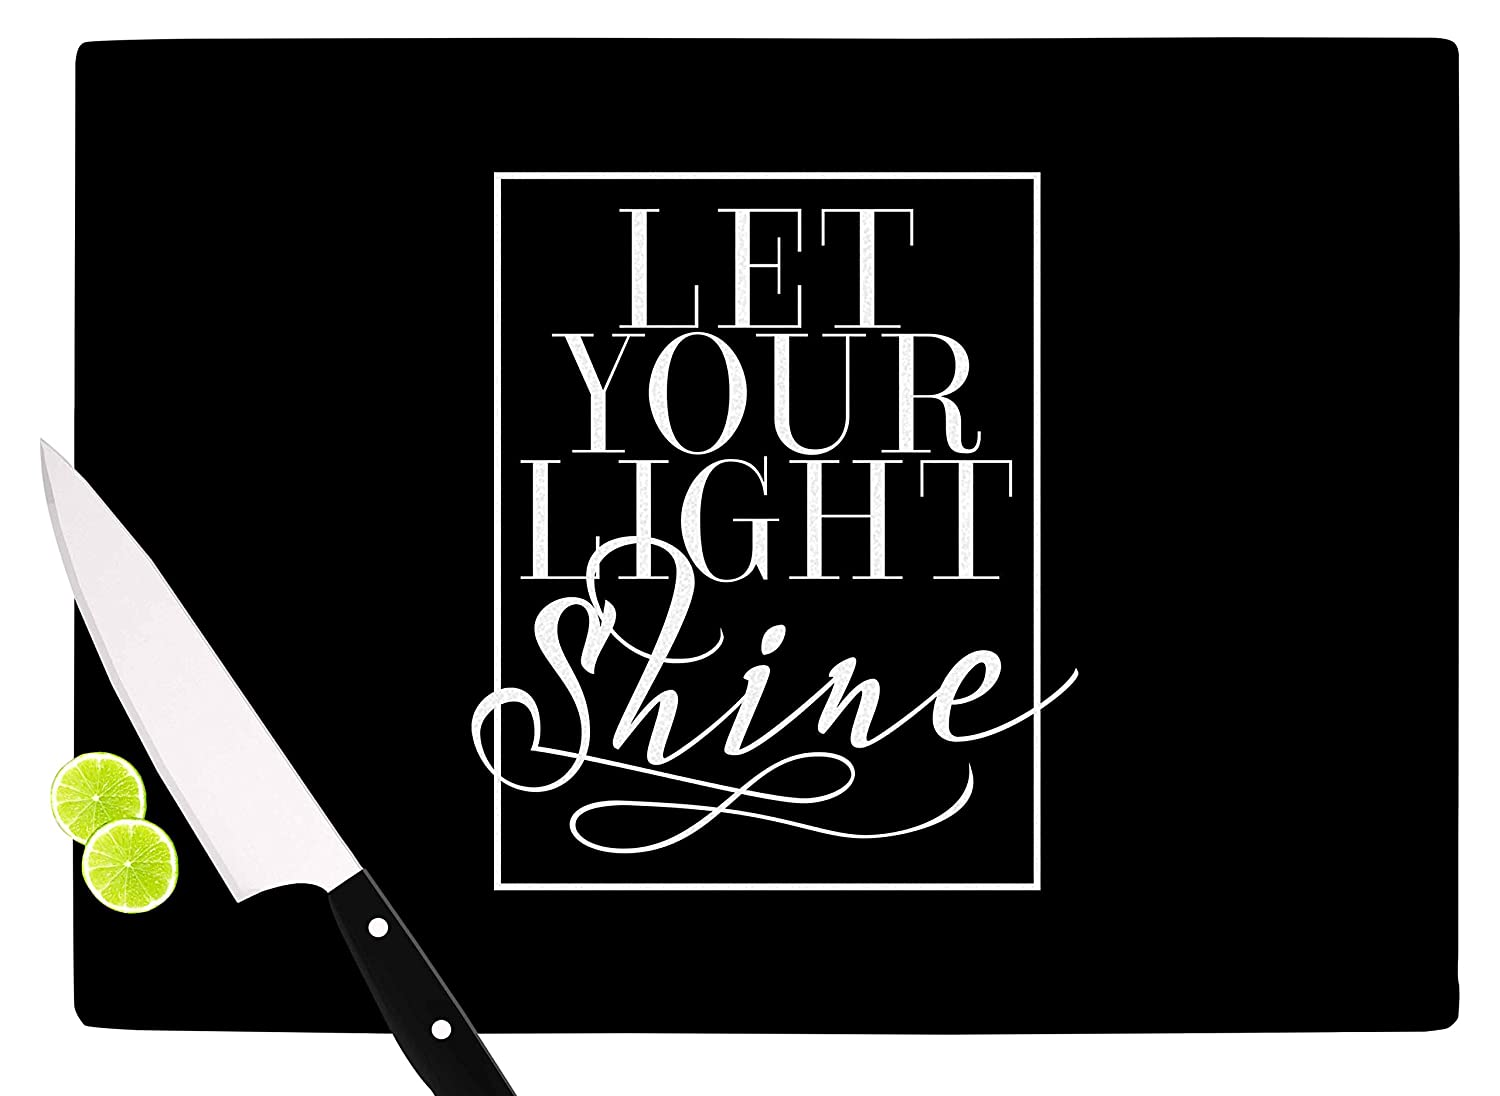 KESS InHouse Noonday DesignLet Your Light Shine Black White Cutting Board 11.5 x 15.75 Multicolor